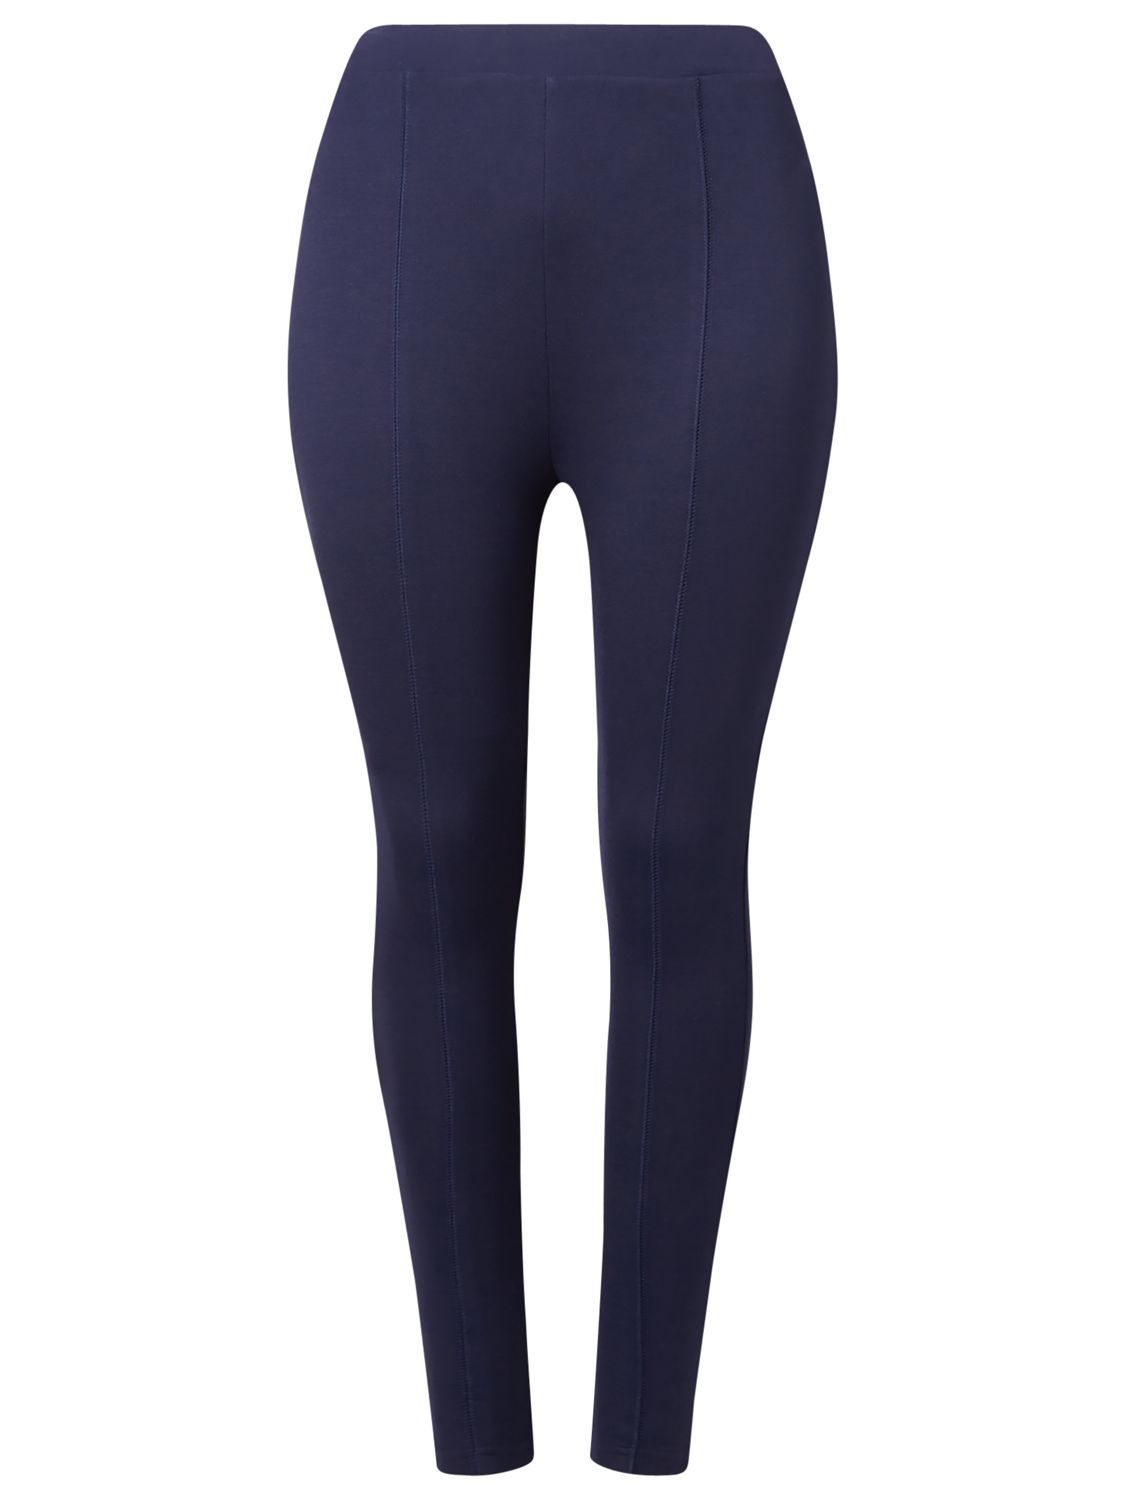 Studio 8 Studio 8 Eleanor Leggings